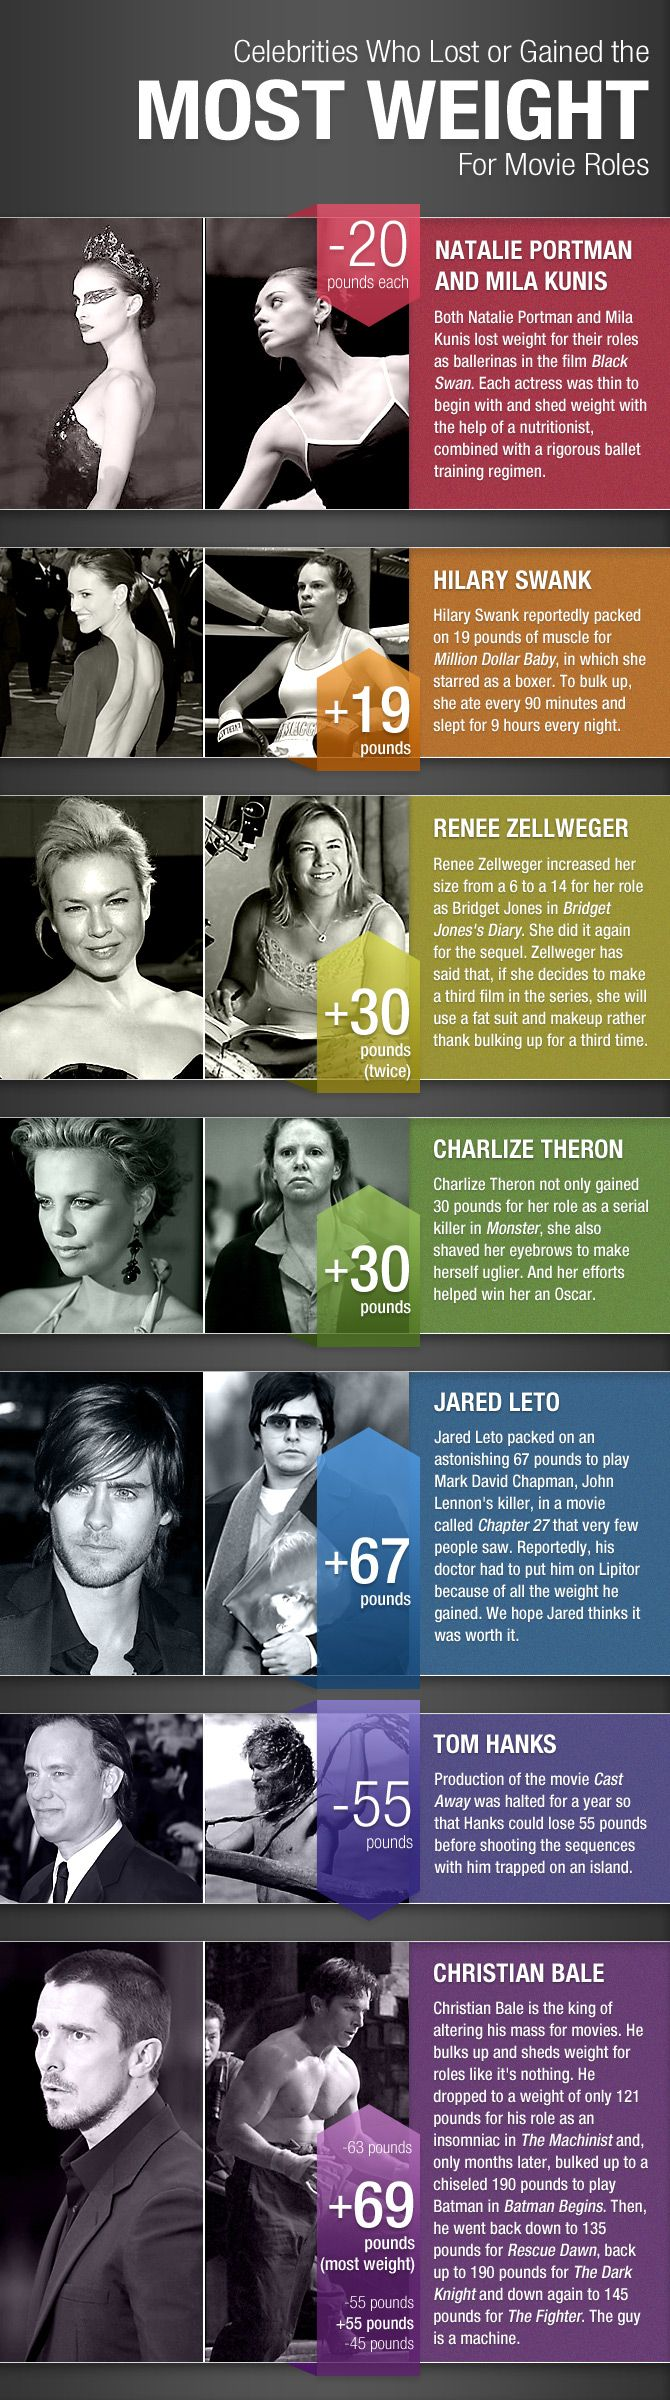 Actors (m/f) who gained or lost weight for movie roles. And the winner is...